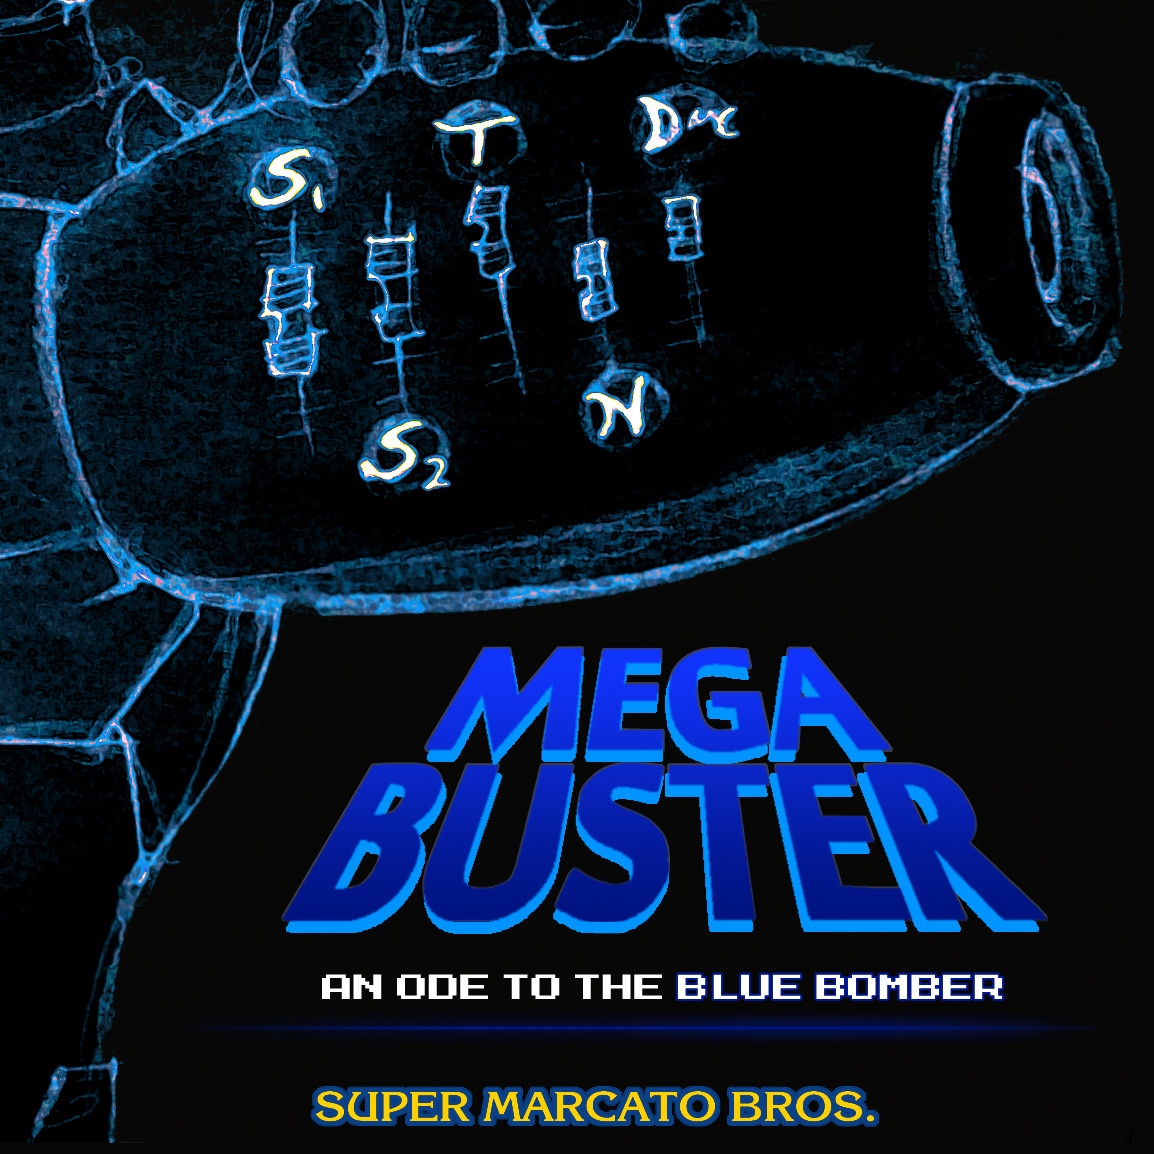 super-marcato-bros-mega-buster-mega-man-tribute